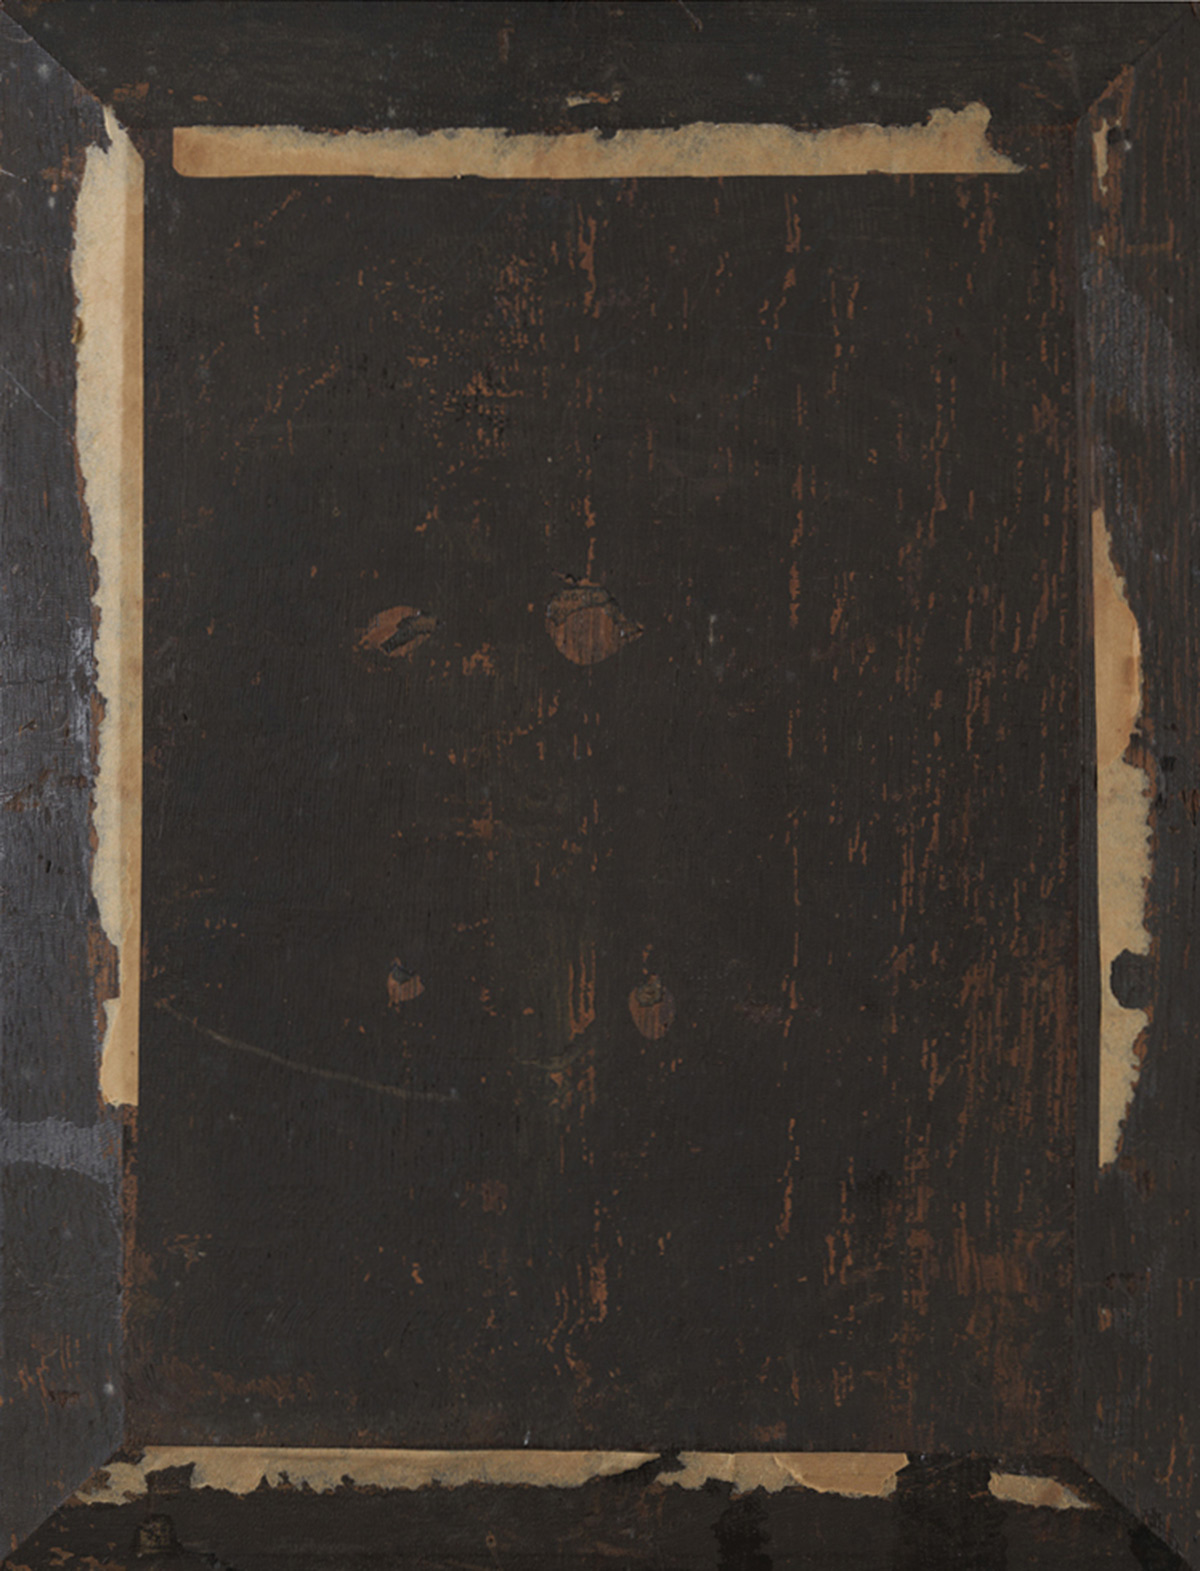 Back view of Rembrandt's Smell showing its beveled oak panel